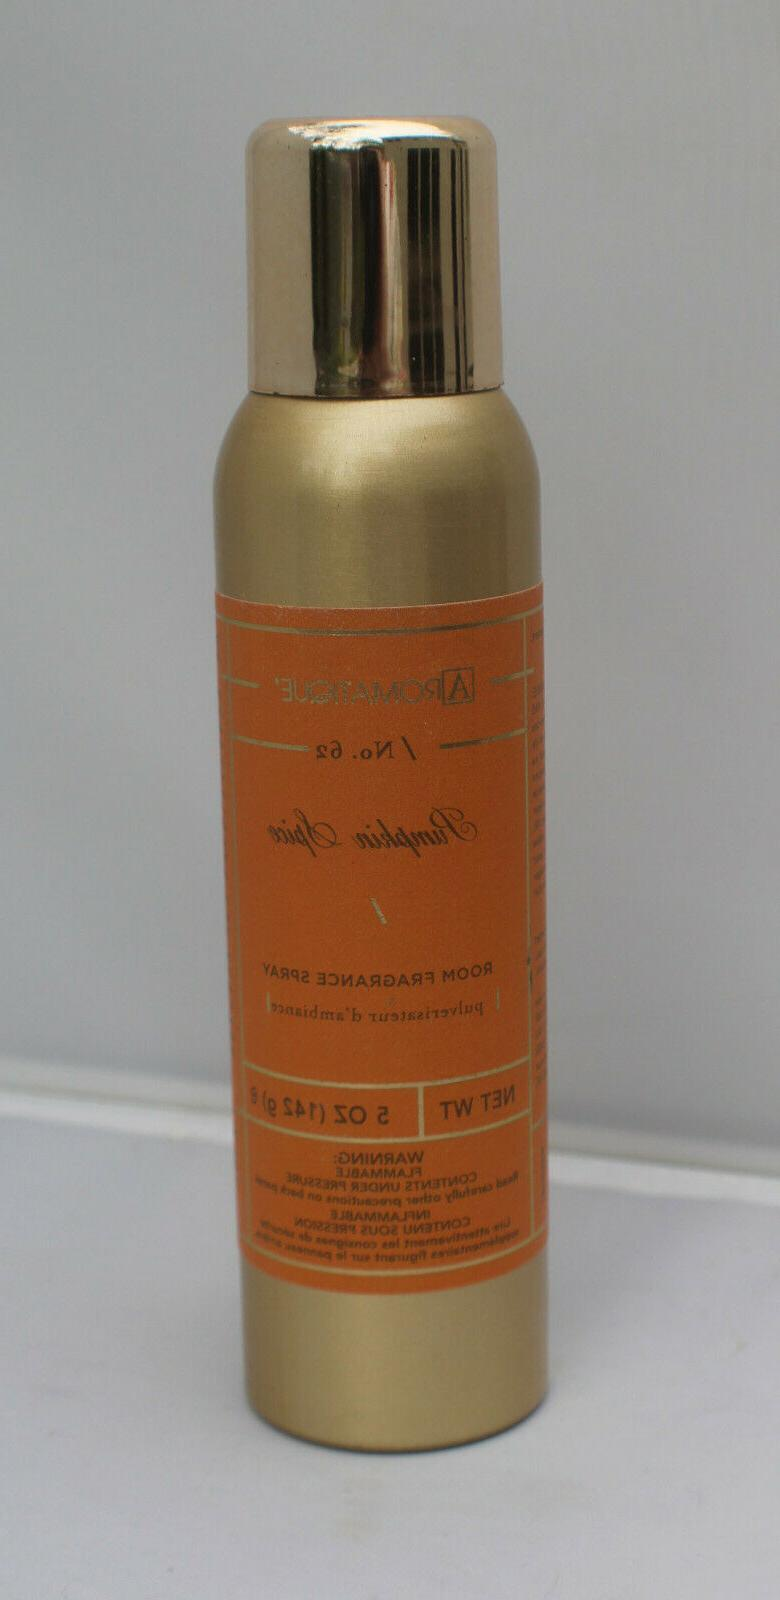 Aromatique PUMPKIN SPICE Room Spray 5 Ounce